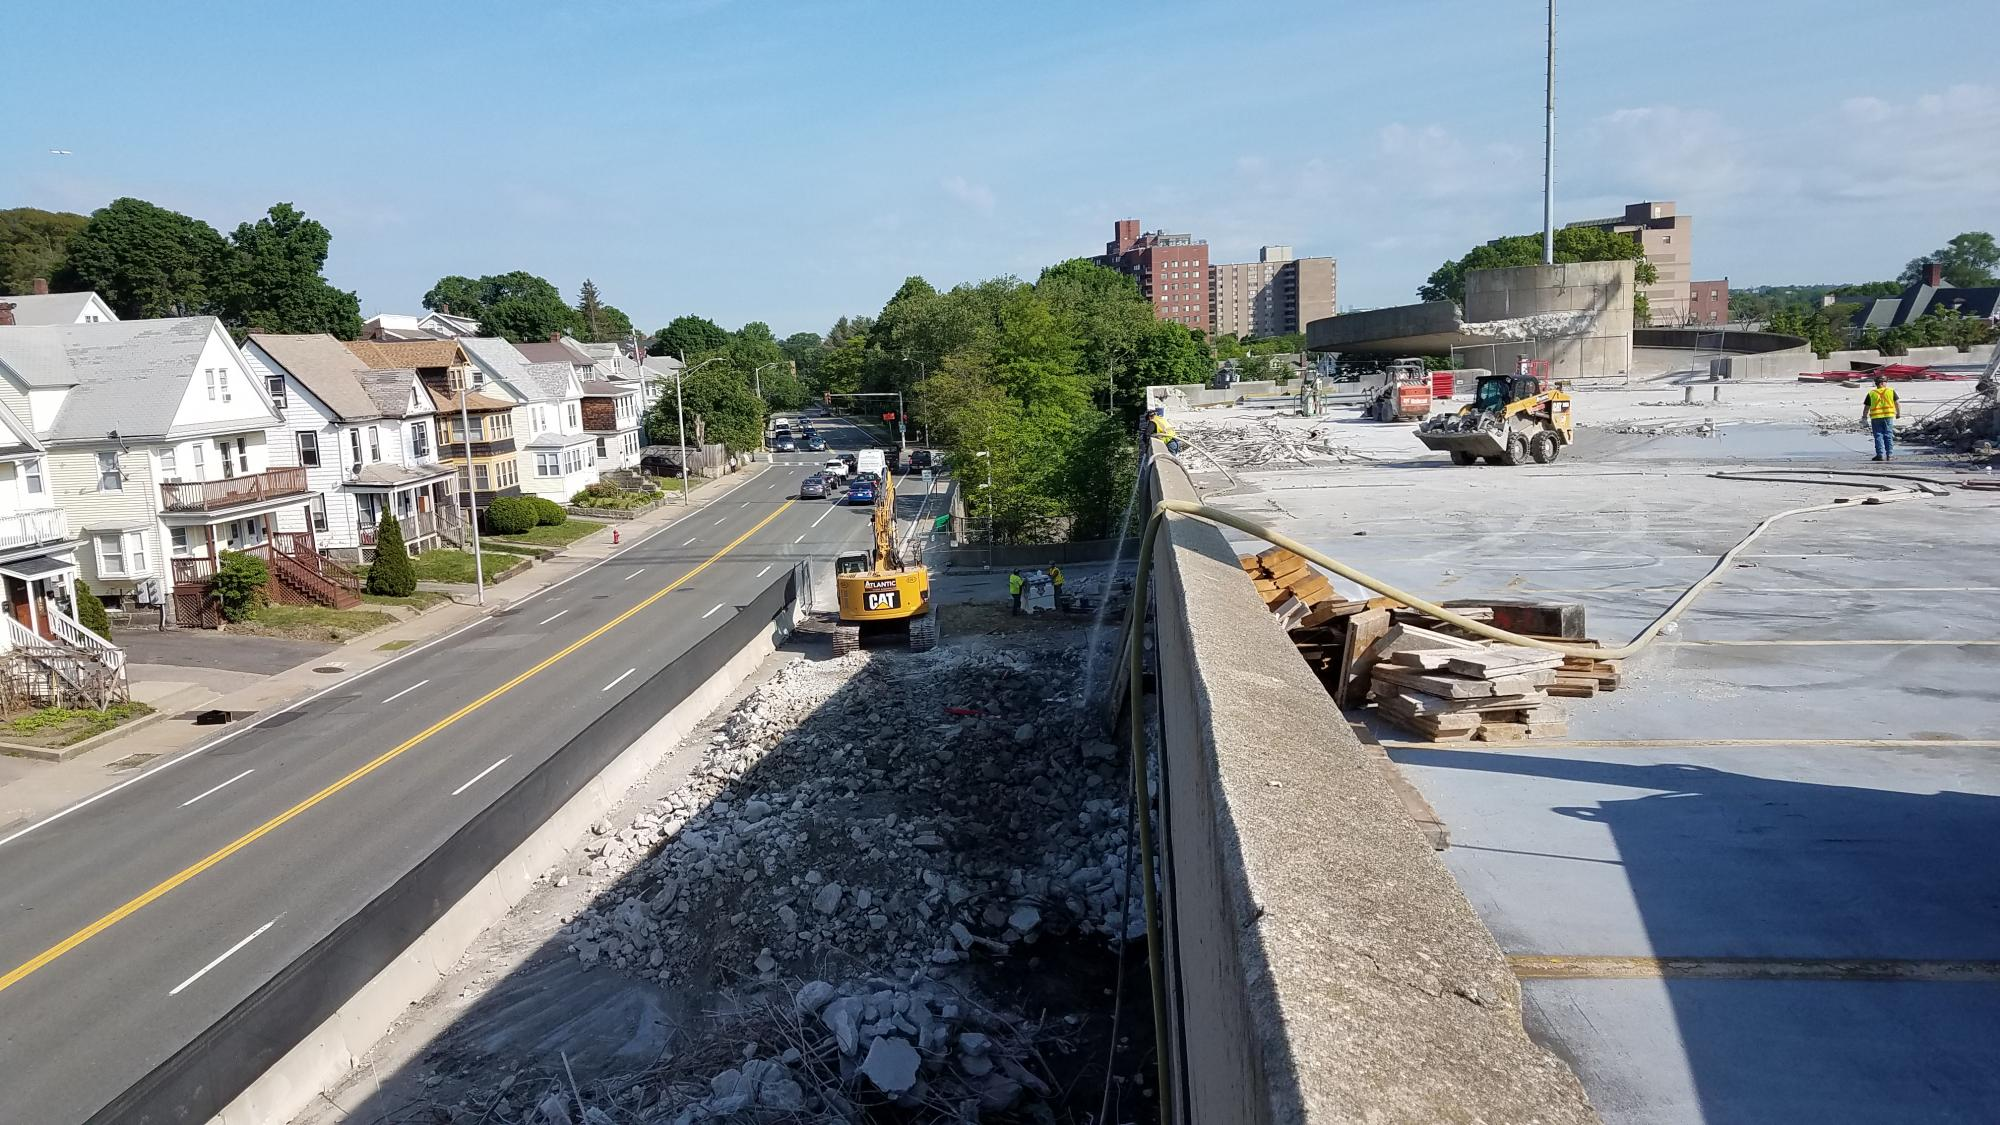 Removing debris from Quincy Center Garage (May 30, 2018)